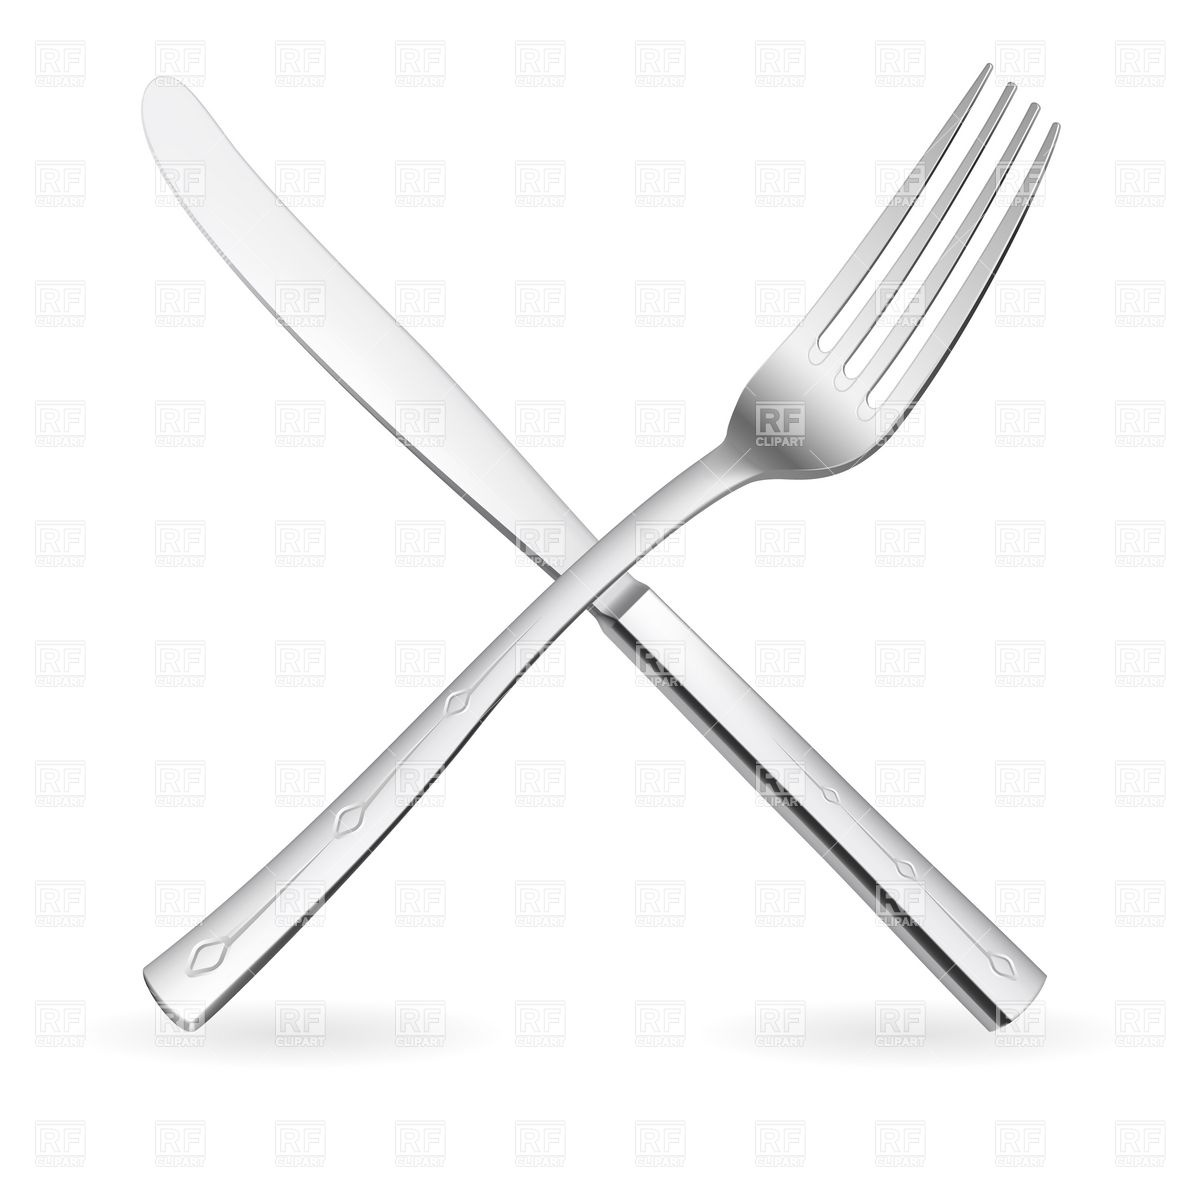 Crossed silver fork and knife Vector Image #7793.